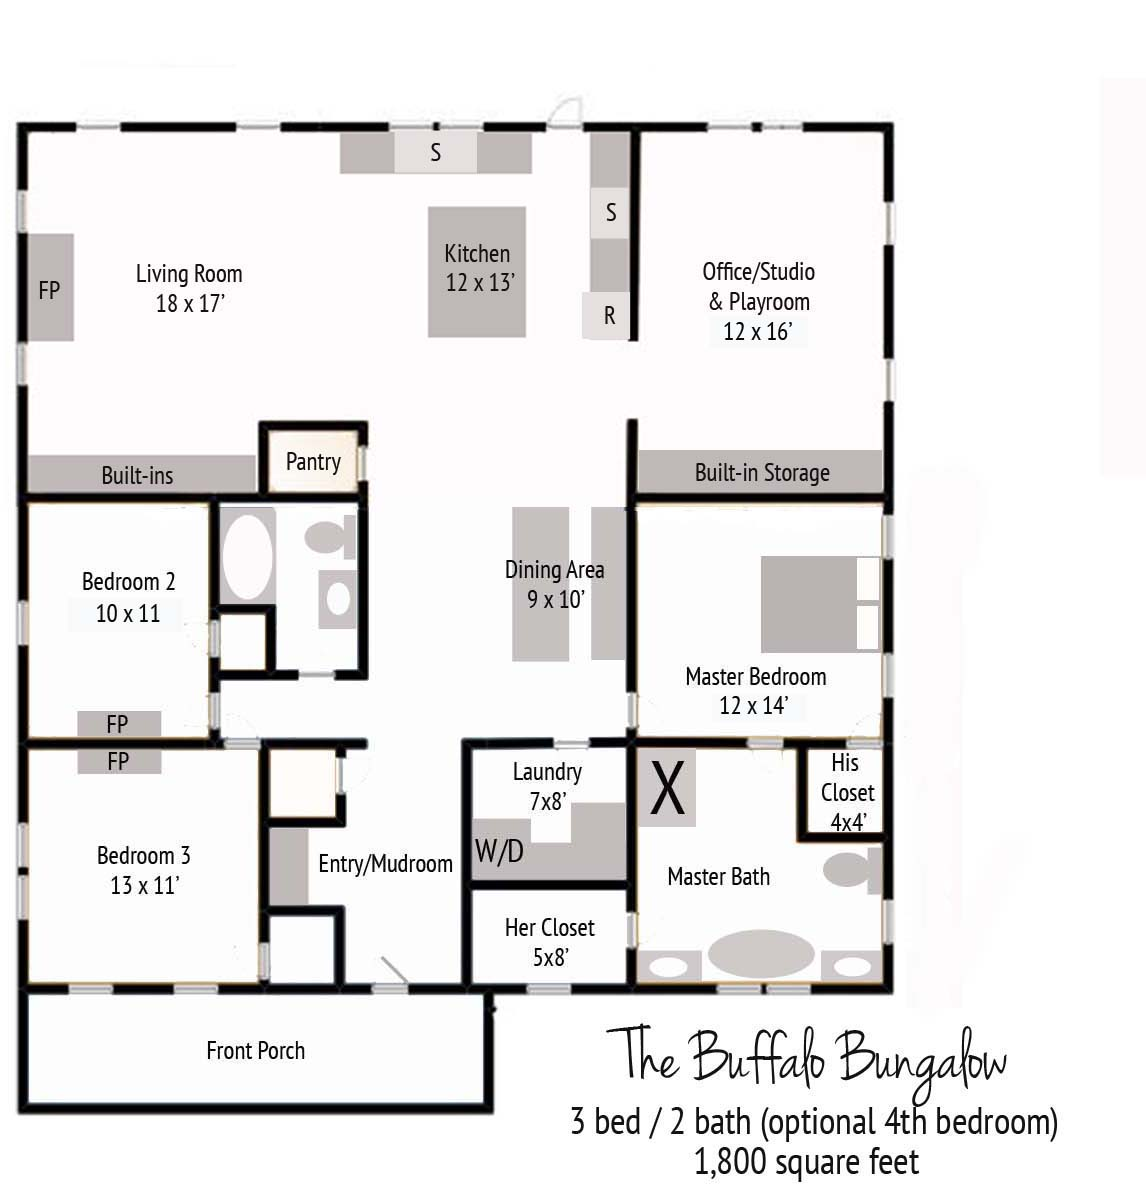 Master Bathroom Design Plans - thewhitebuffalostylingco.com on square house plans, square apartment plans, square kitchen plans,